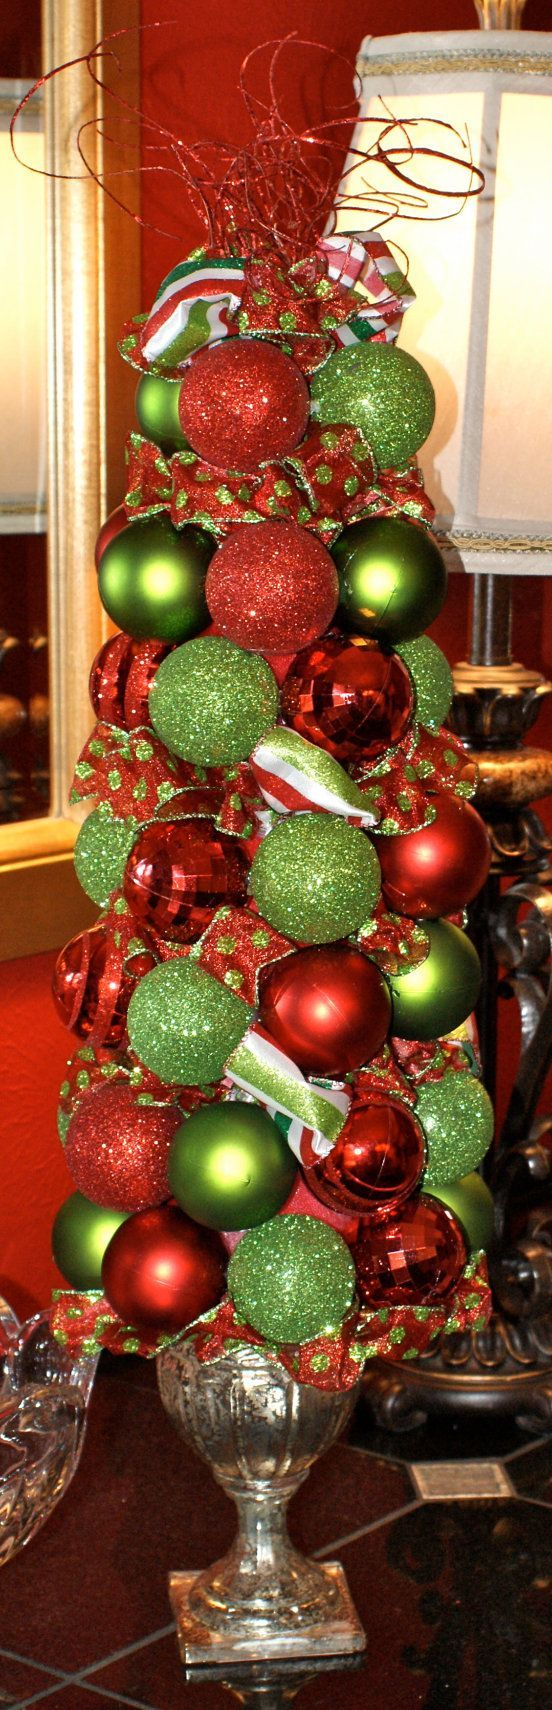 Outdoor christmas tree decorations - 40 Stunning Outdoor Christmas Tree Decorations Christmas Celebrations